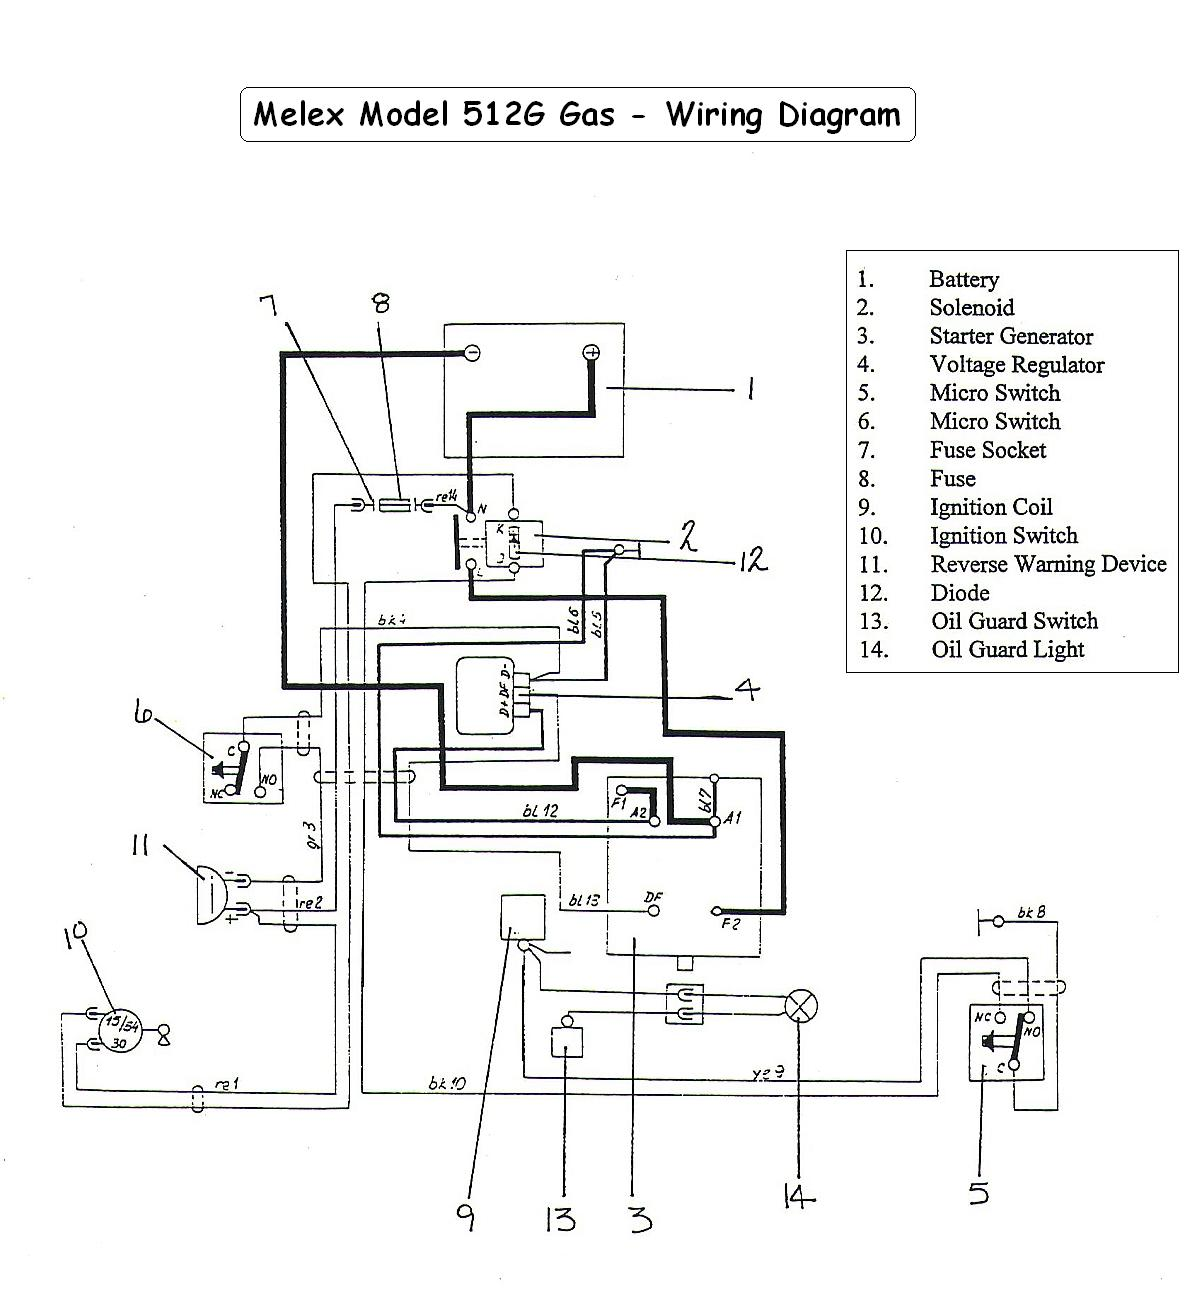 yamaha portable generator wiring diagram with Gallery on Phase A Matic Pam 300hd Wiring Diagram additionally Rv Generator Install additionally Sa 200 Lincoln Welder Engine Wiring Diagram as well Panasonic Se 4340 Wiring Schematic likewise Product detail.